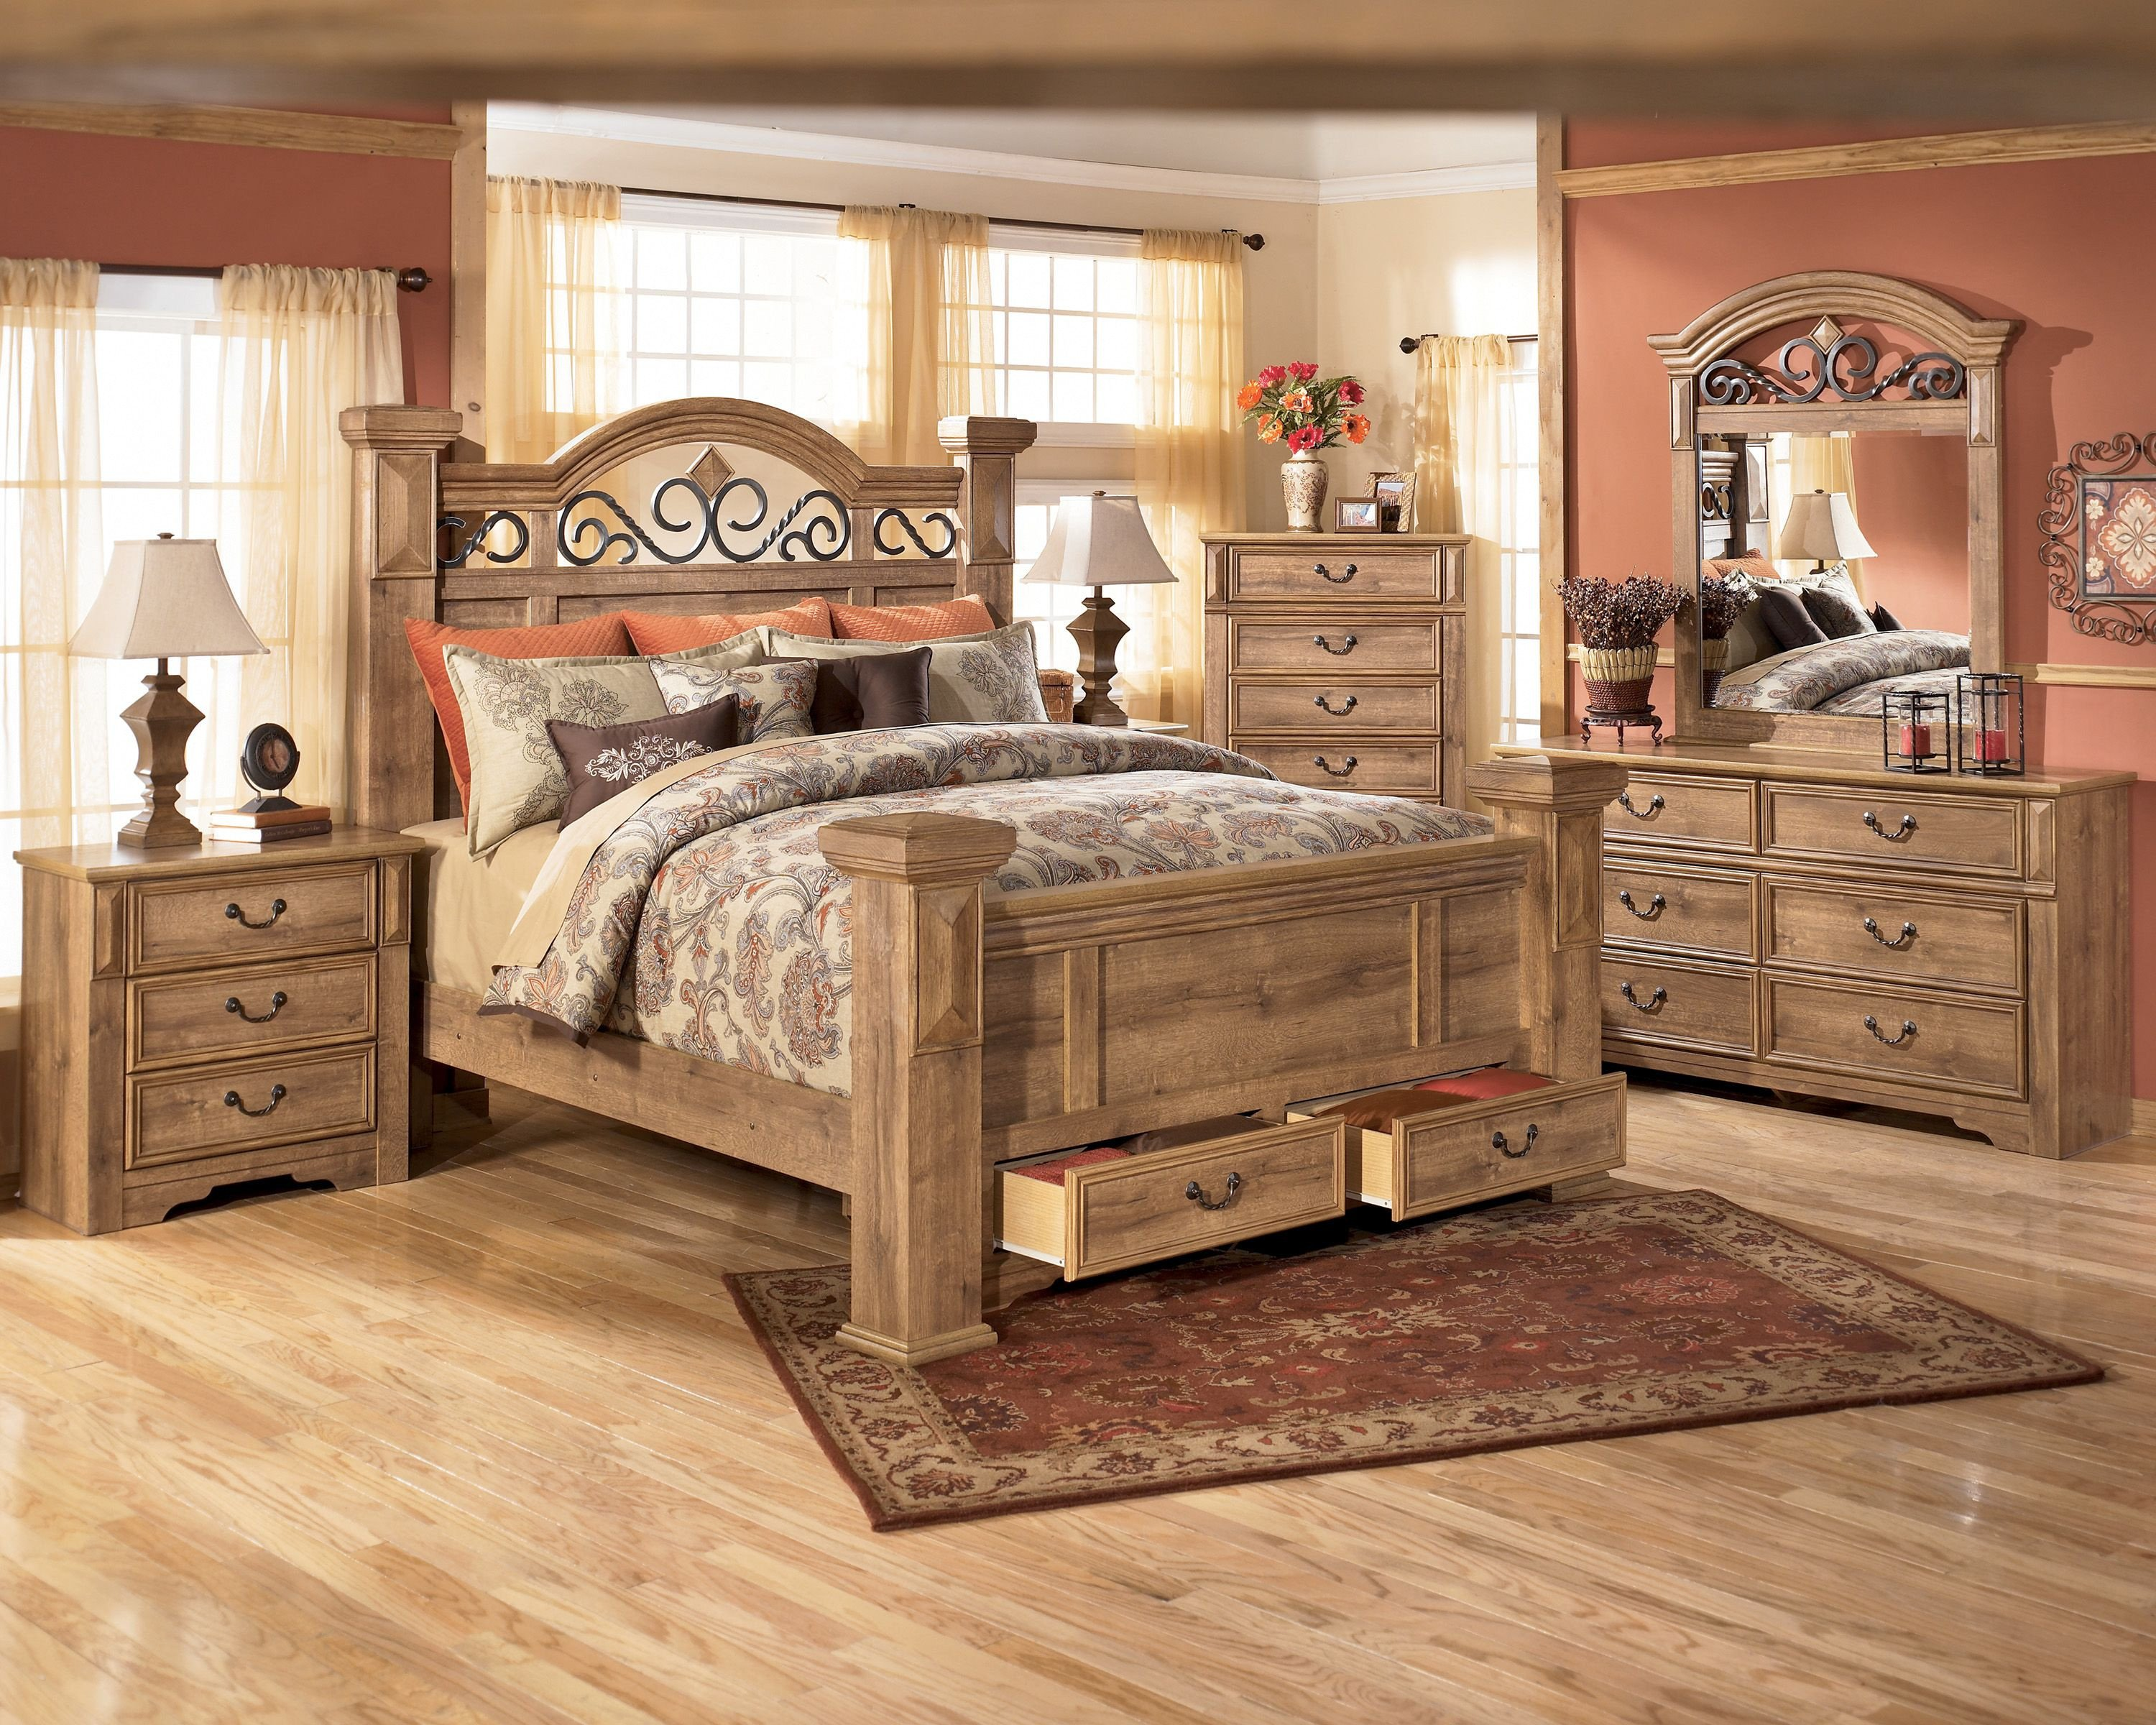 Cal King Bedroom Set Beautiful Awesome Awesome Full Size Bed Set 89 Home Decorating